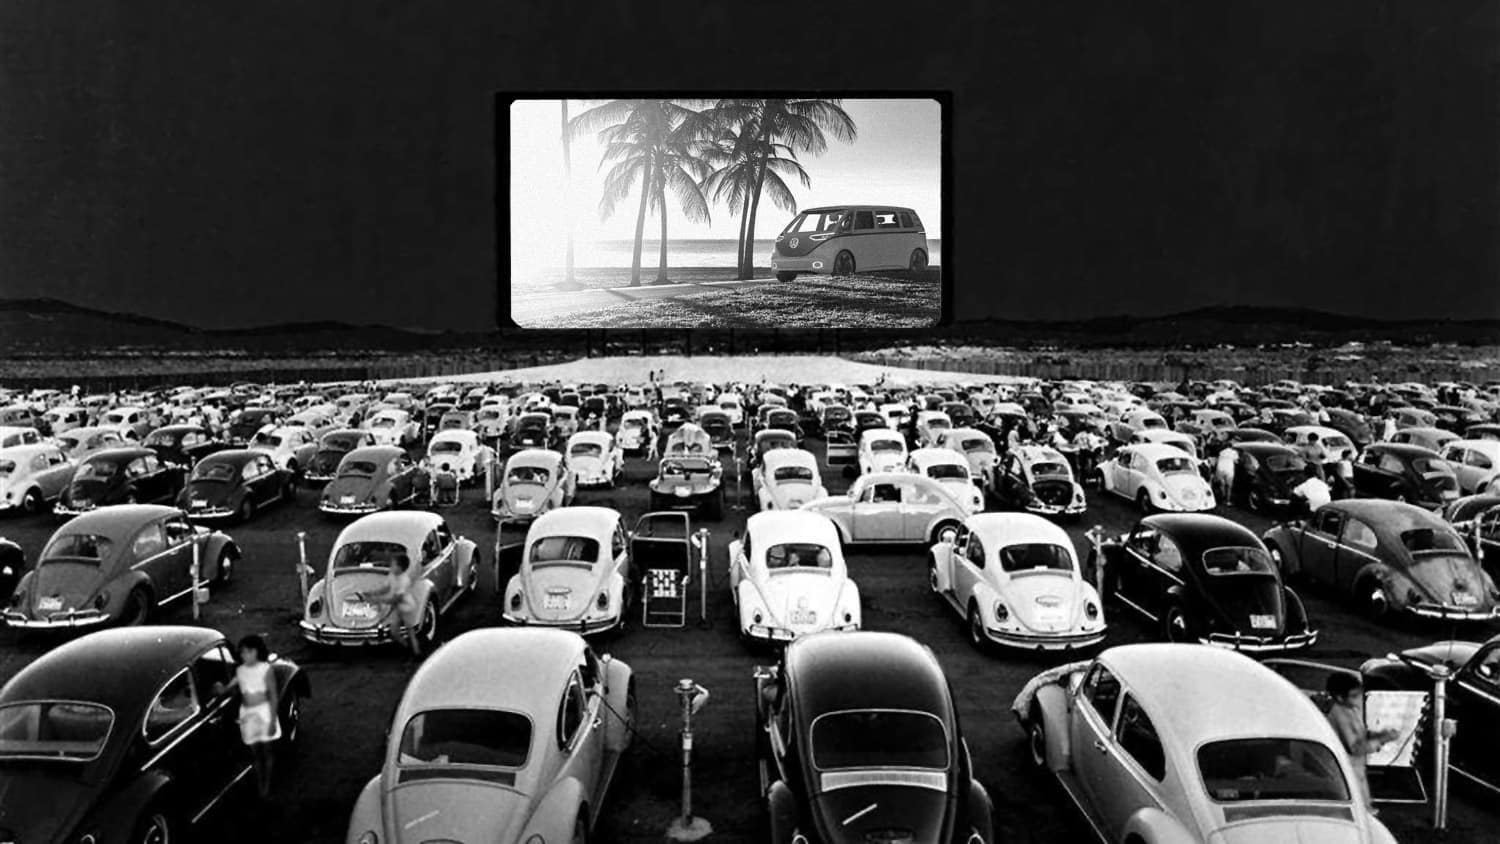 Timmons list if movies featuring VW models